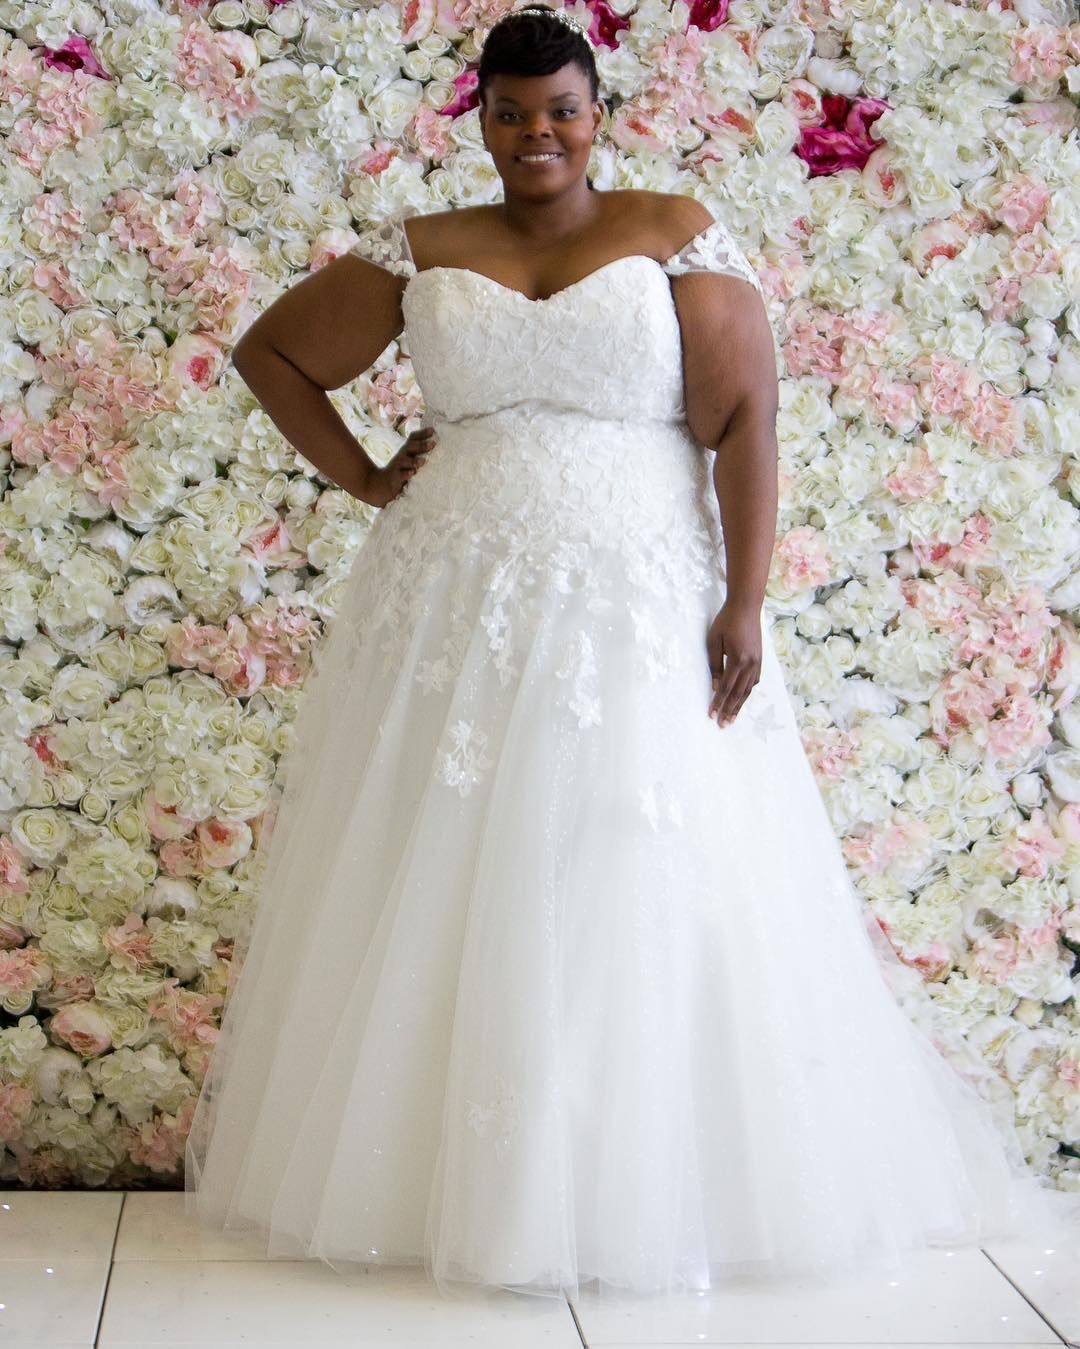 Custom plus size wedding gowns for fuller figured women | Pinterest ...